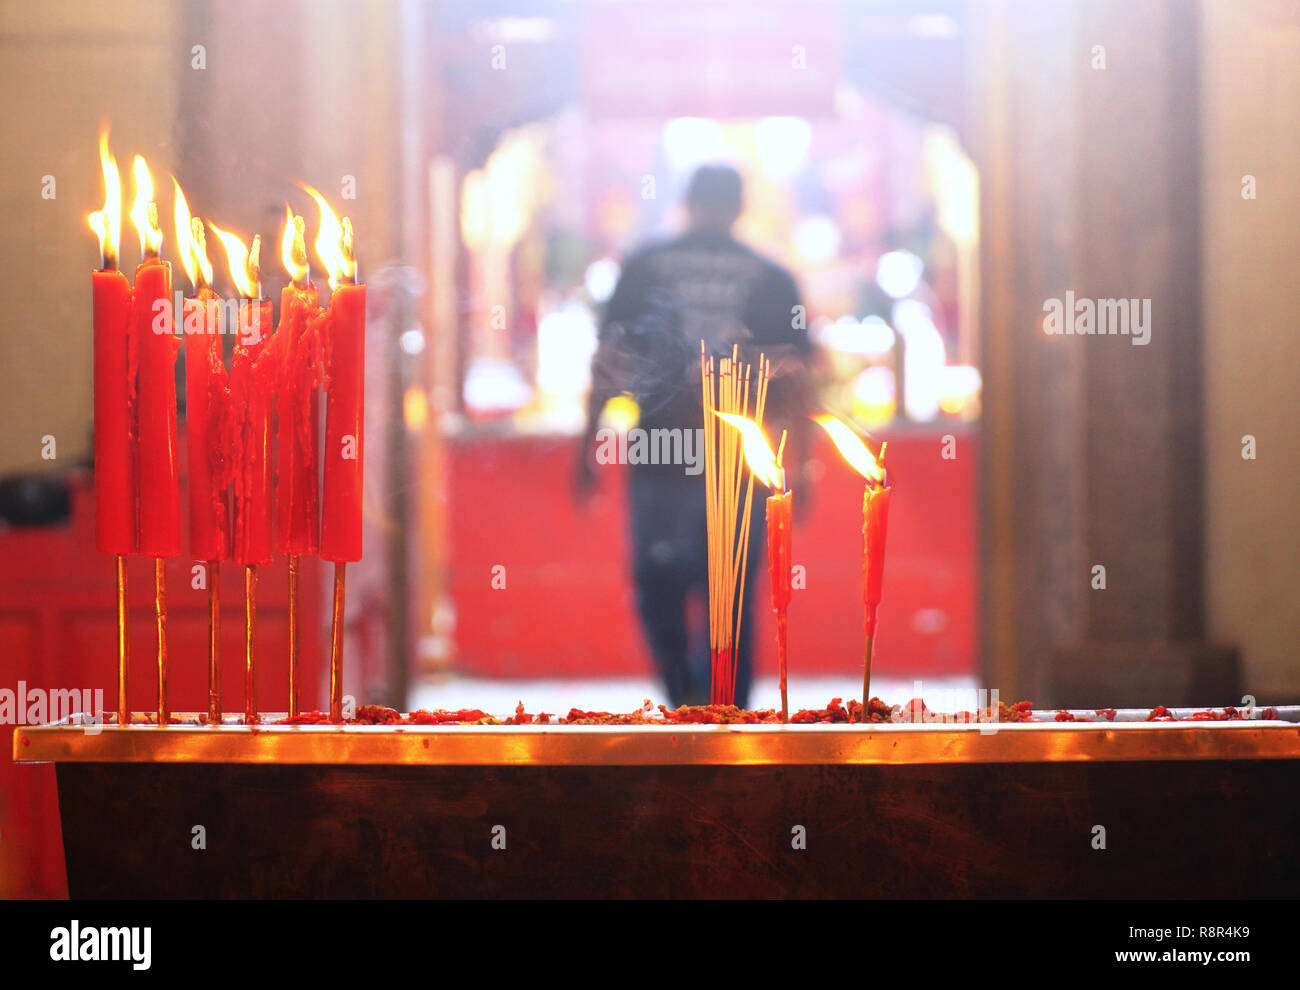 Candles and incenses in shrine temple in chinatown,chinese new year theme - Stock Image